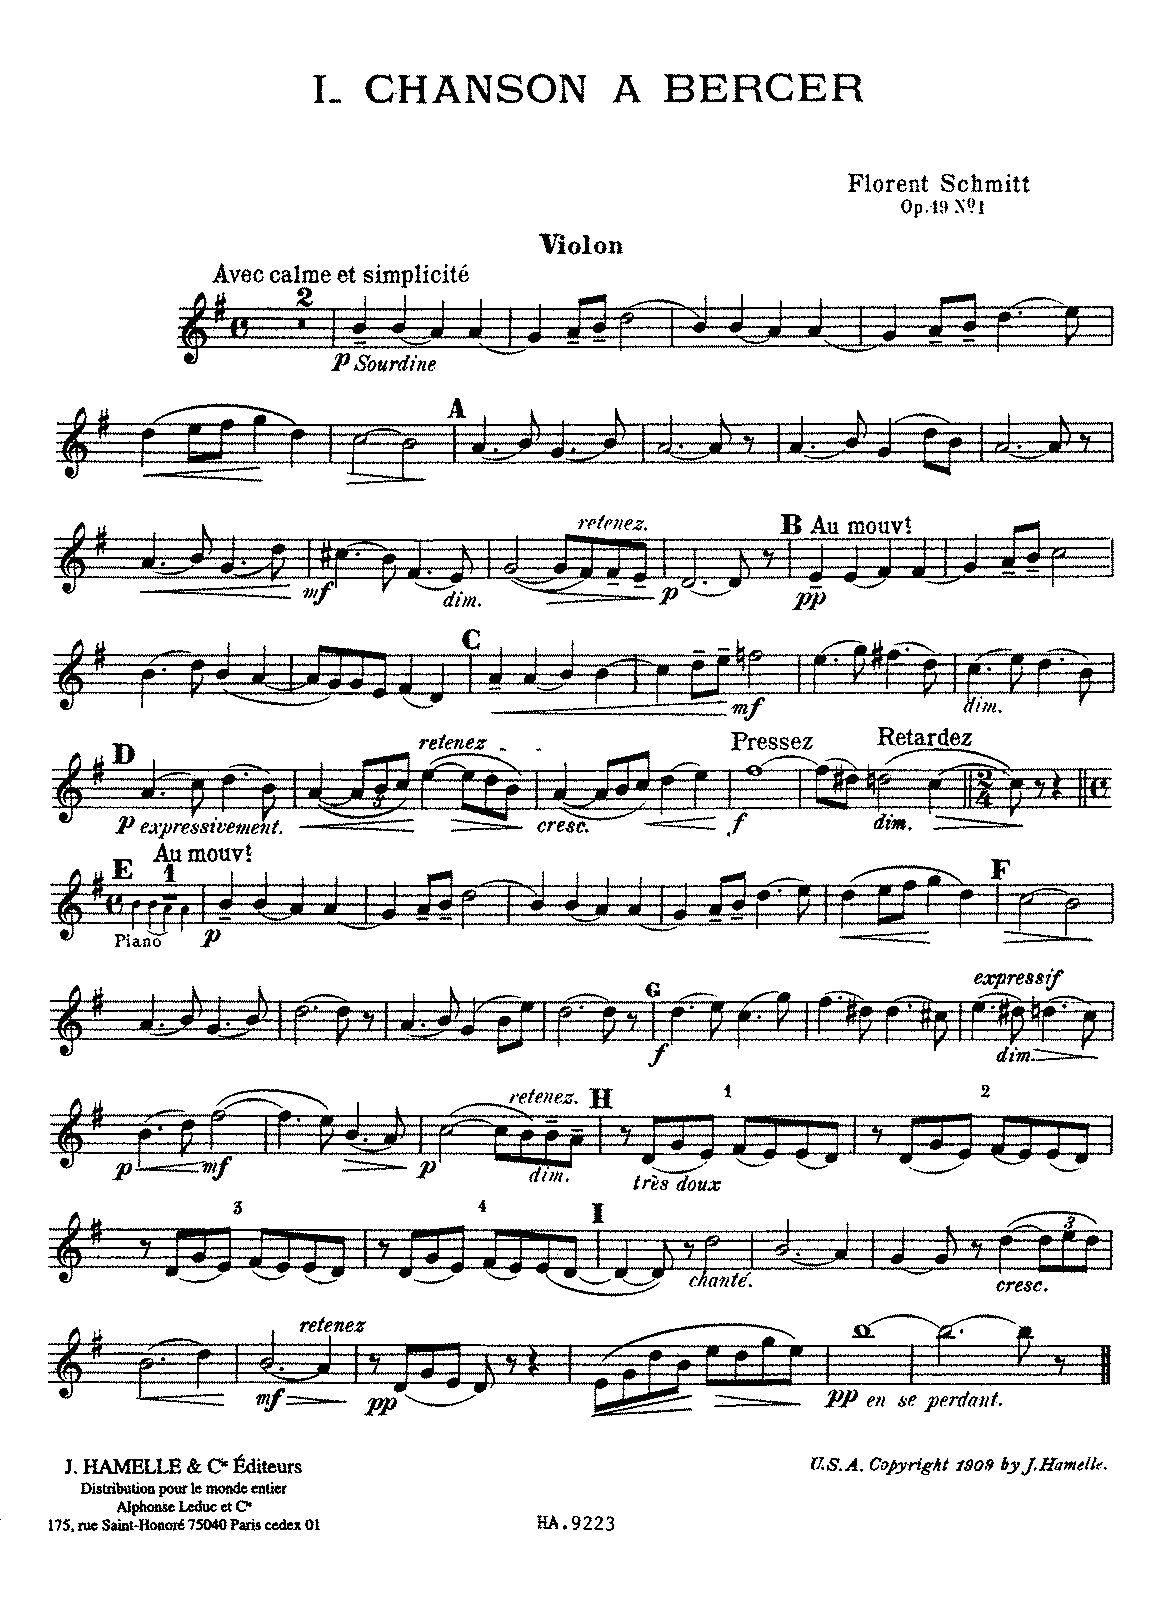 PMLP55465-Schmitt - 5 Pièces, Op. 19, No. 1 - Chanson à bercer (violin or cello and piano).pdf